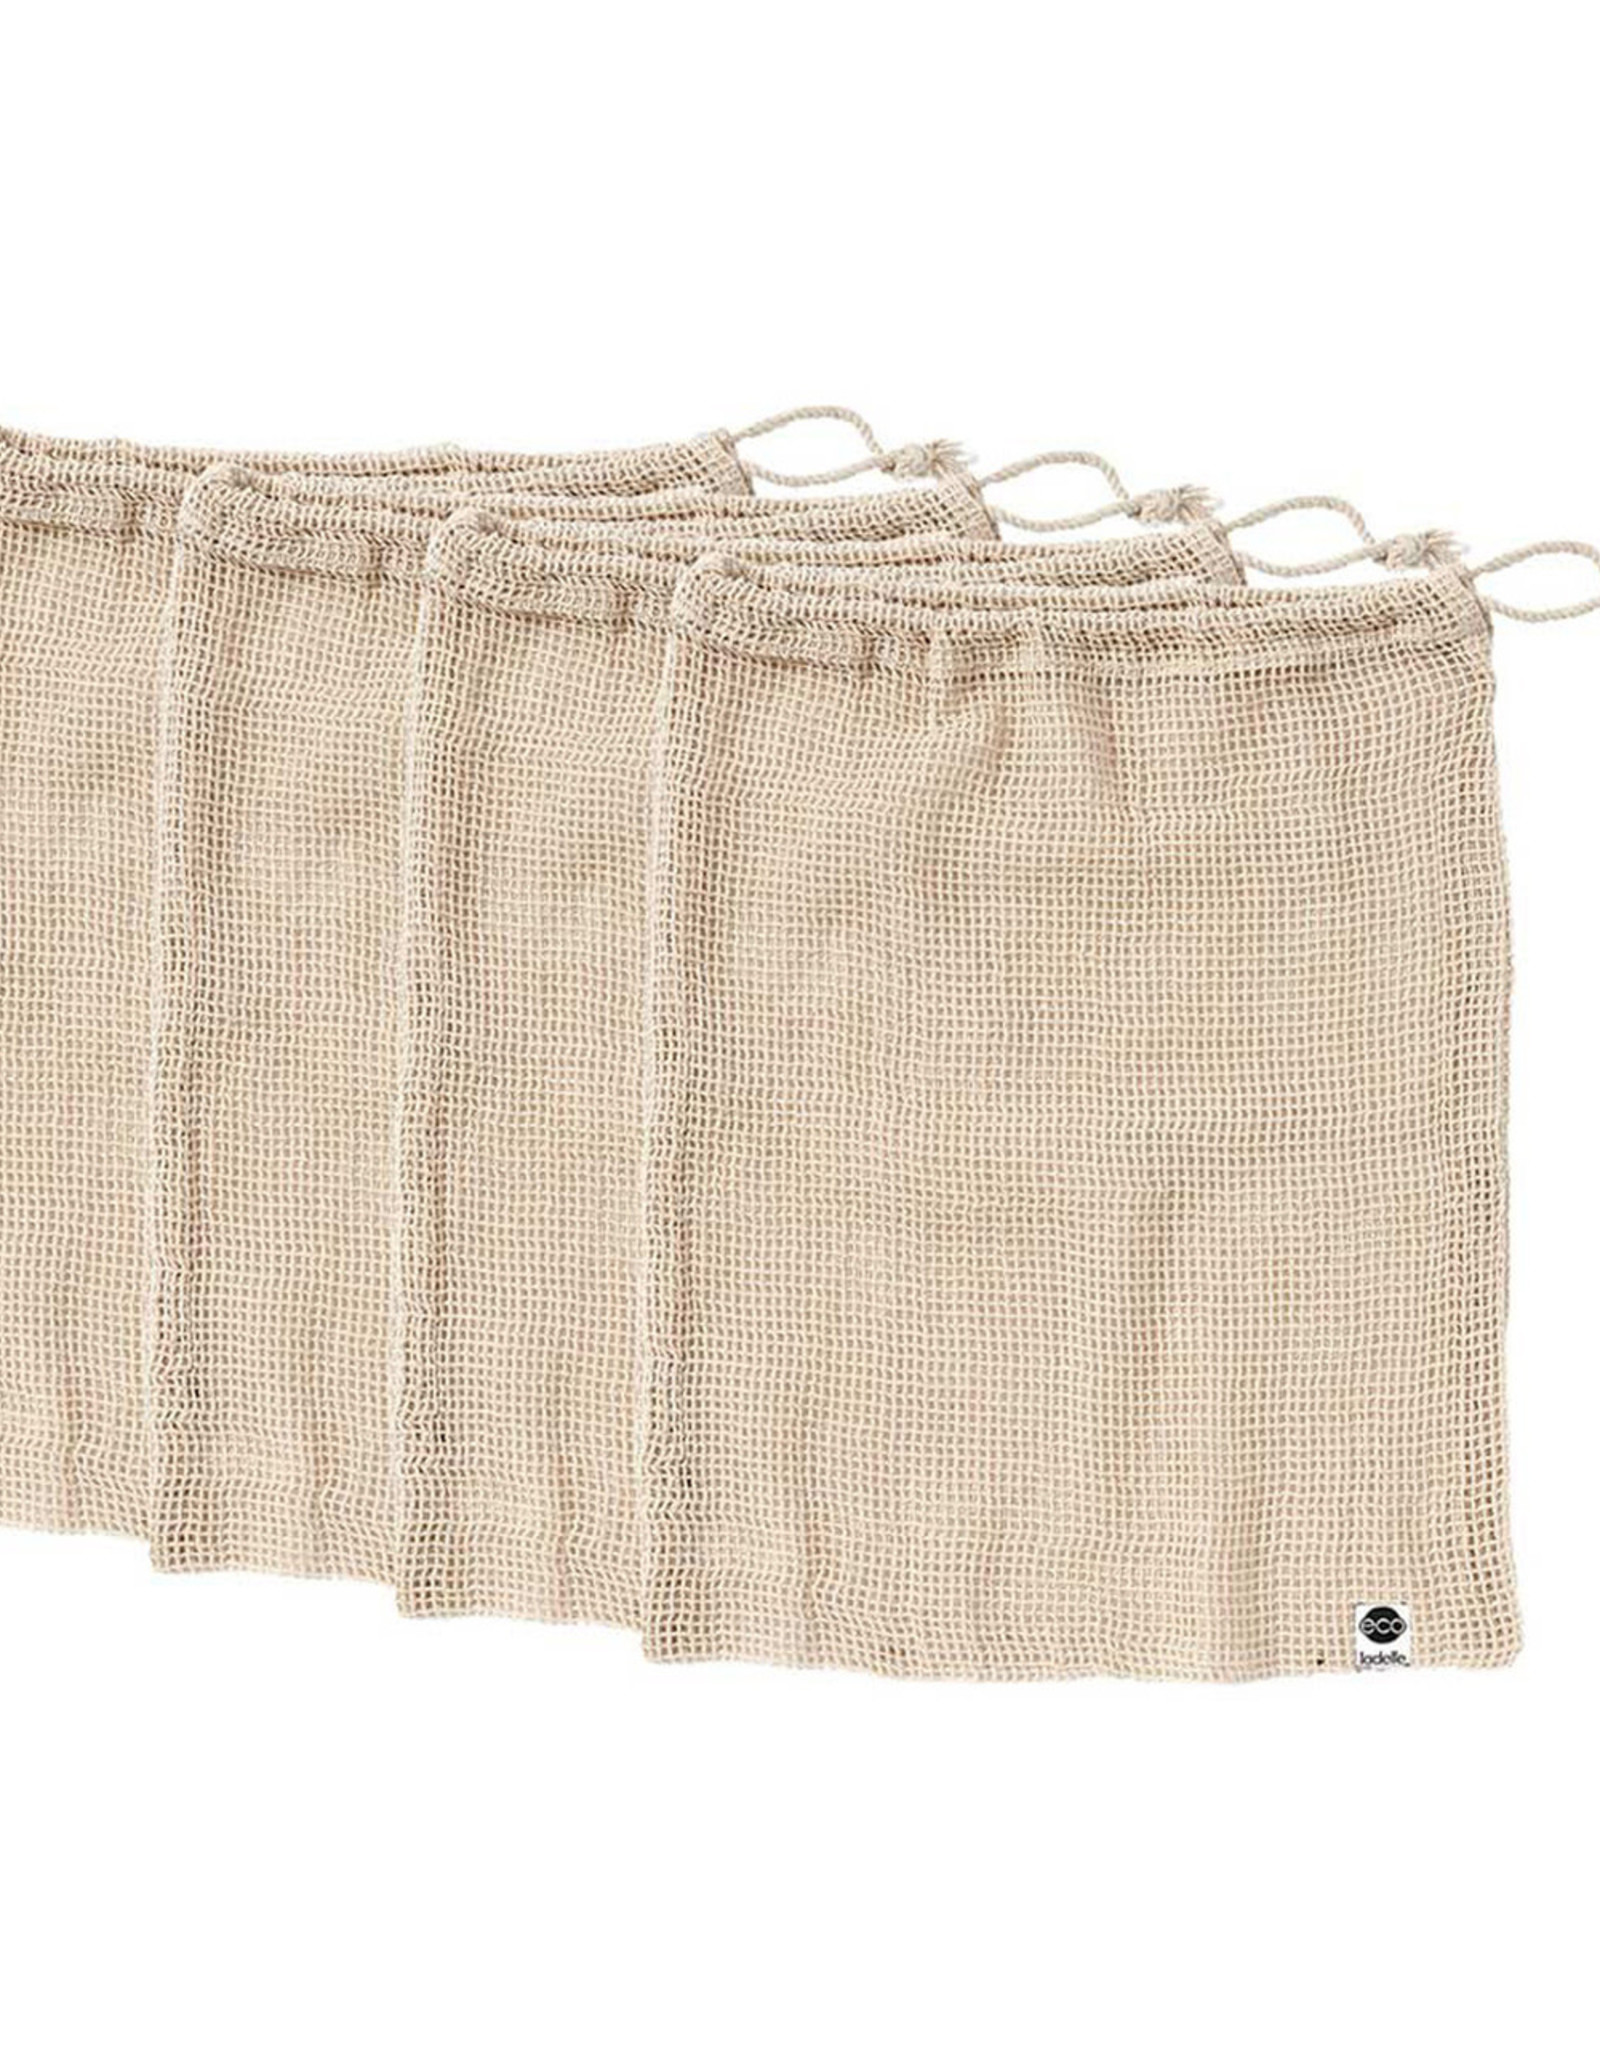 Eco Recycled Natural Mesh Produce Bag Set